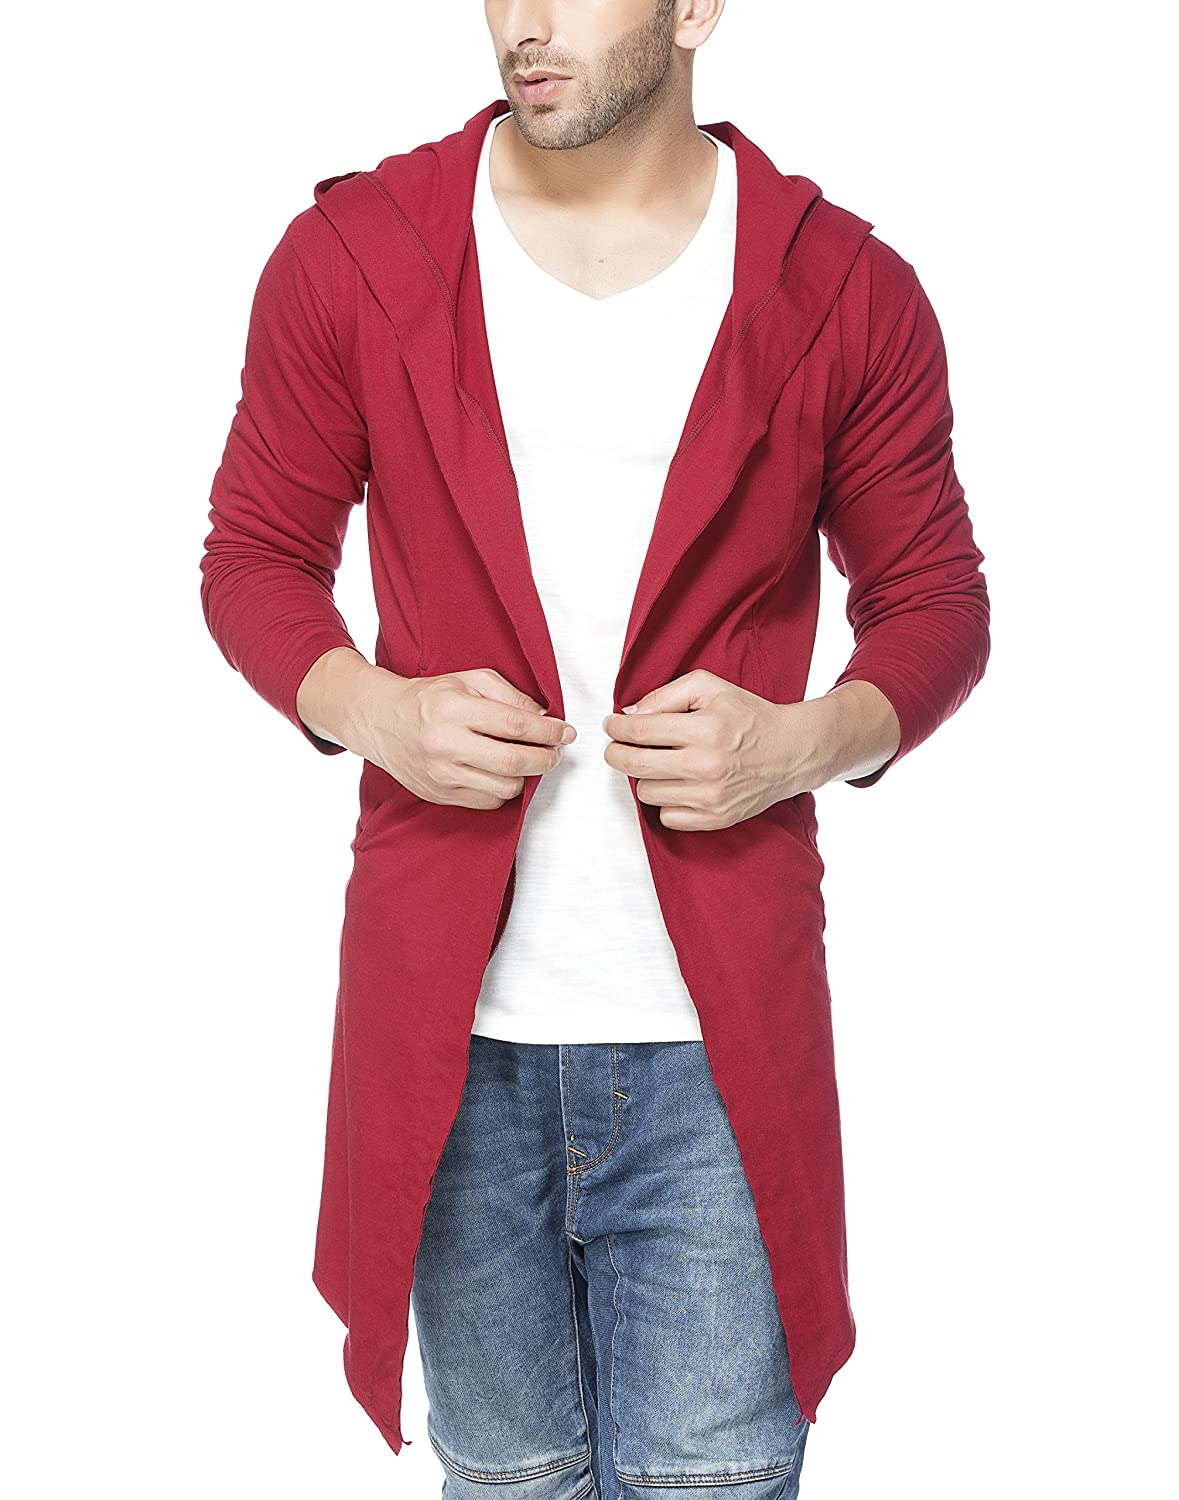 Tinted Men's Cotton Sinker Hooded Cardigan TJ5409